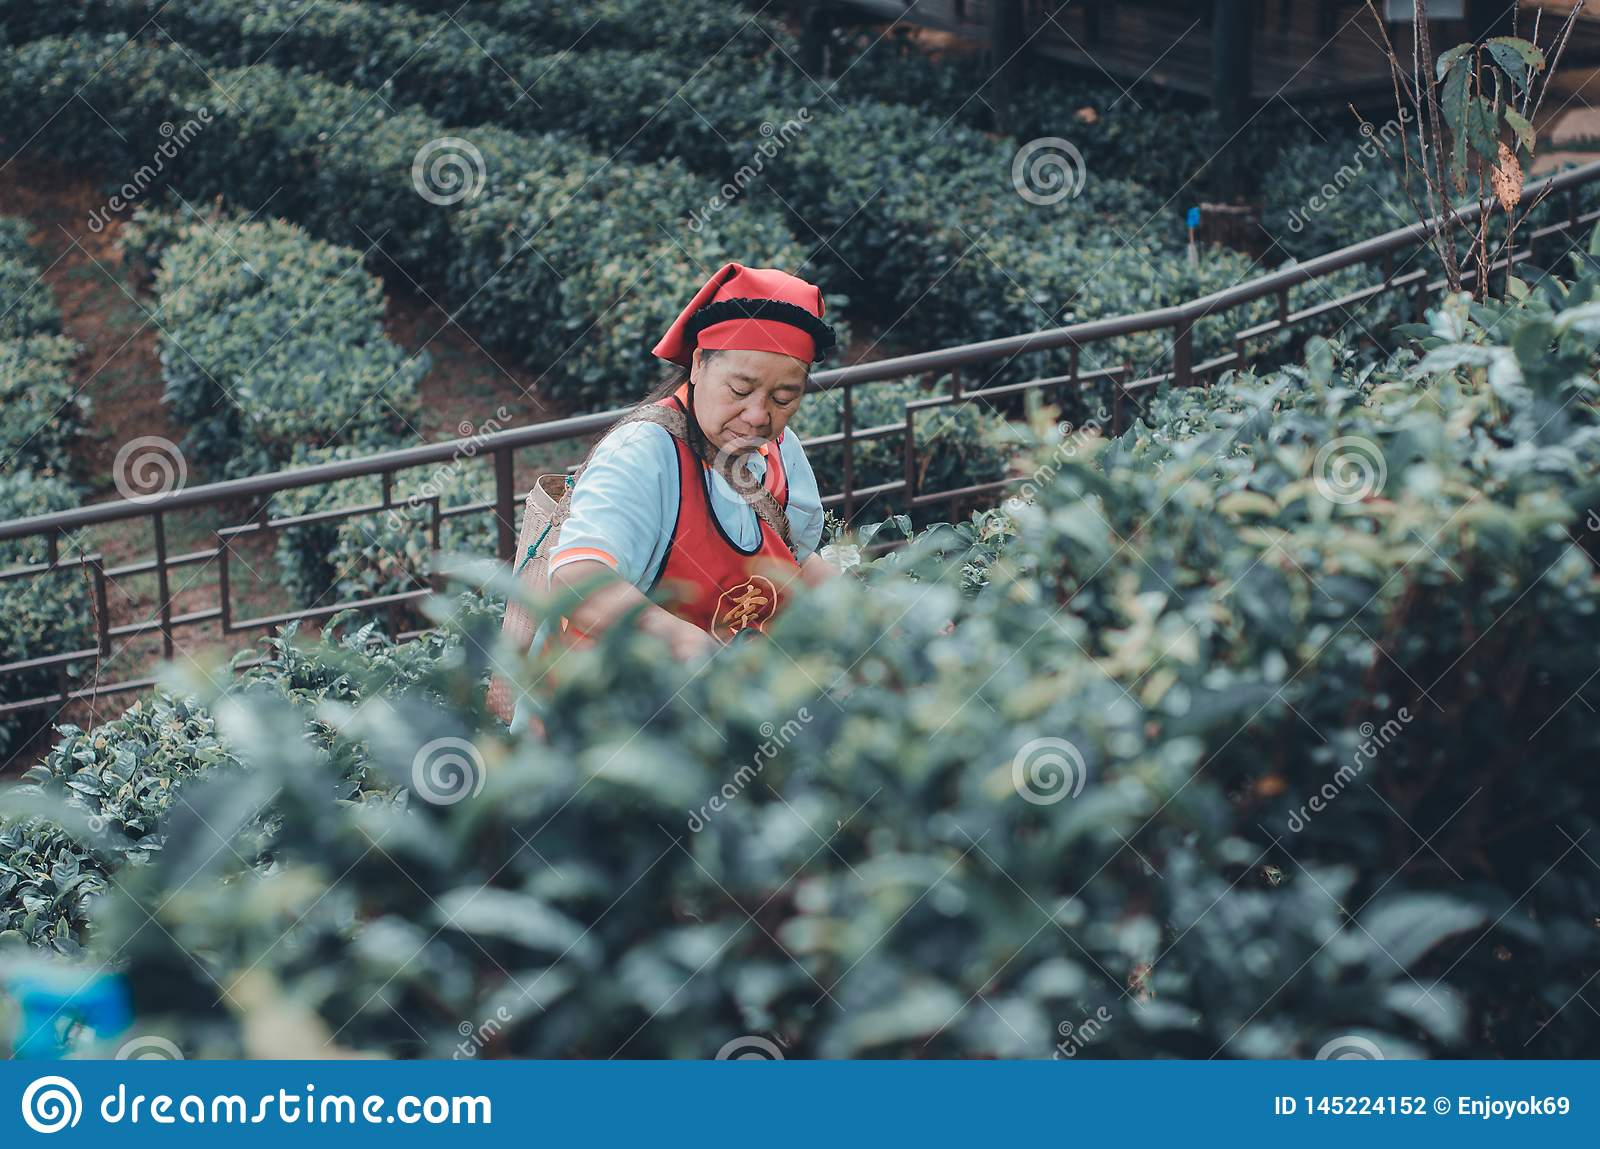 Gardeners collect tea leaves